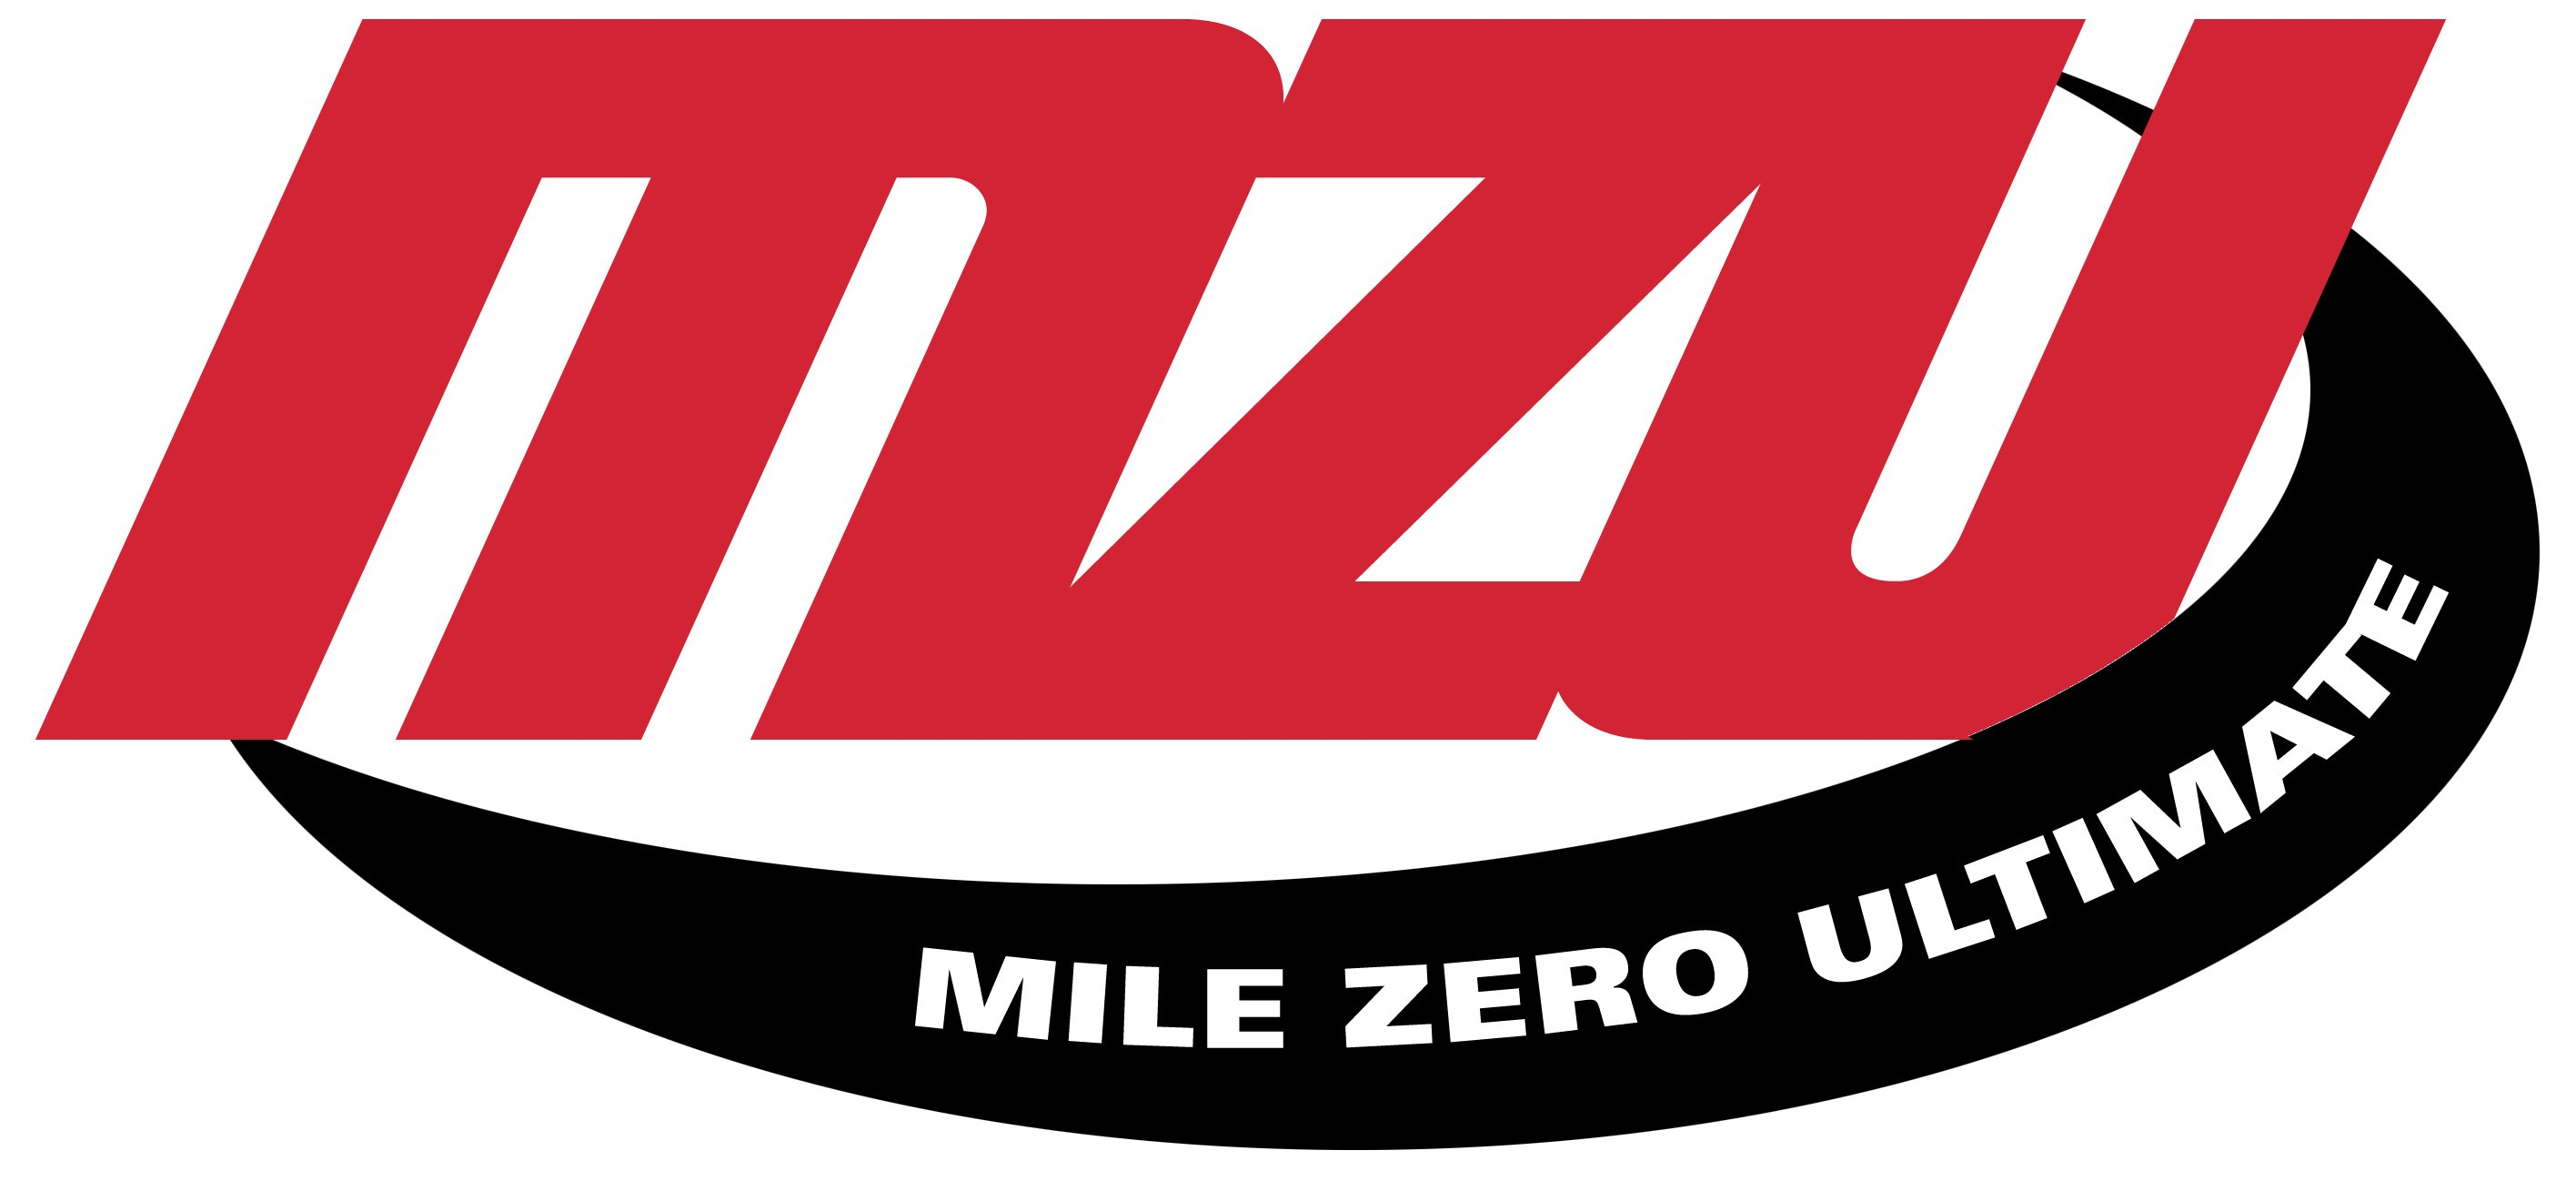 The logo for Mile Zero Ultimate, or MZU.